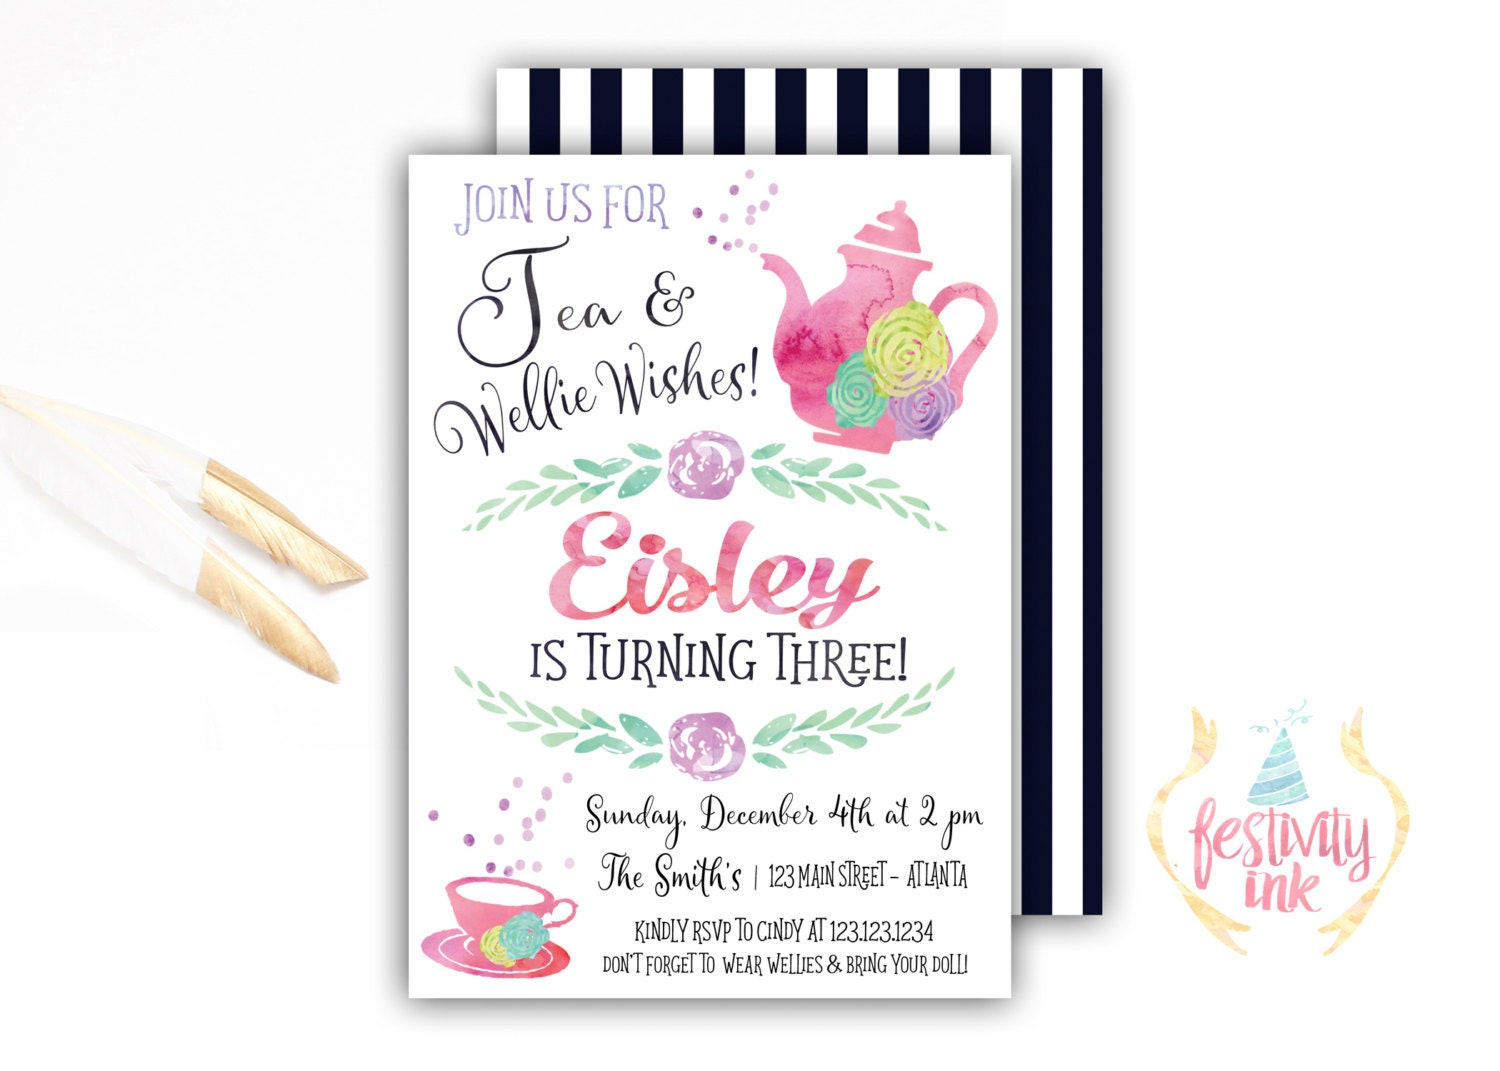 Wellie Wishers Birthday Invitation Tea Party Watercolor   Etsy